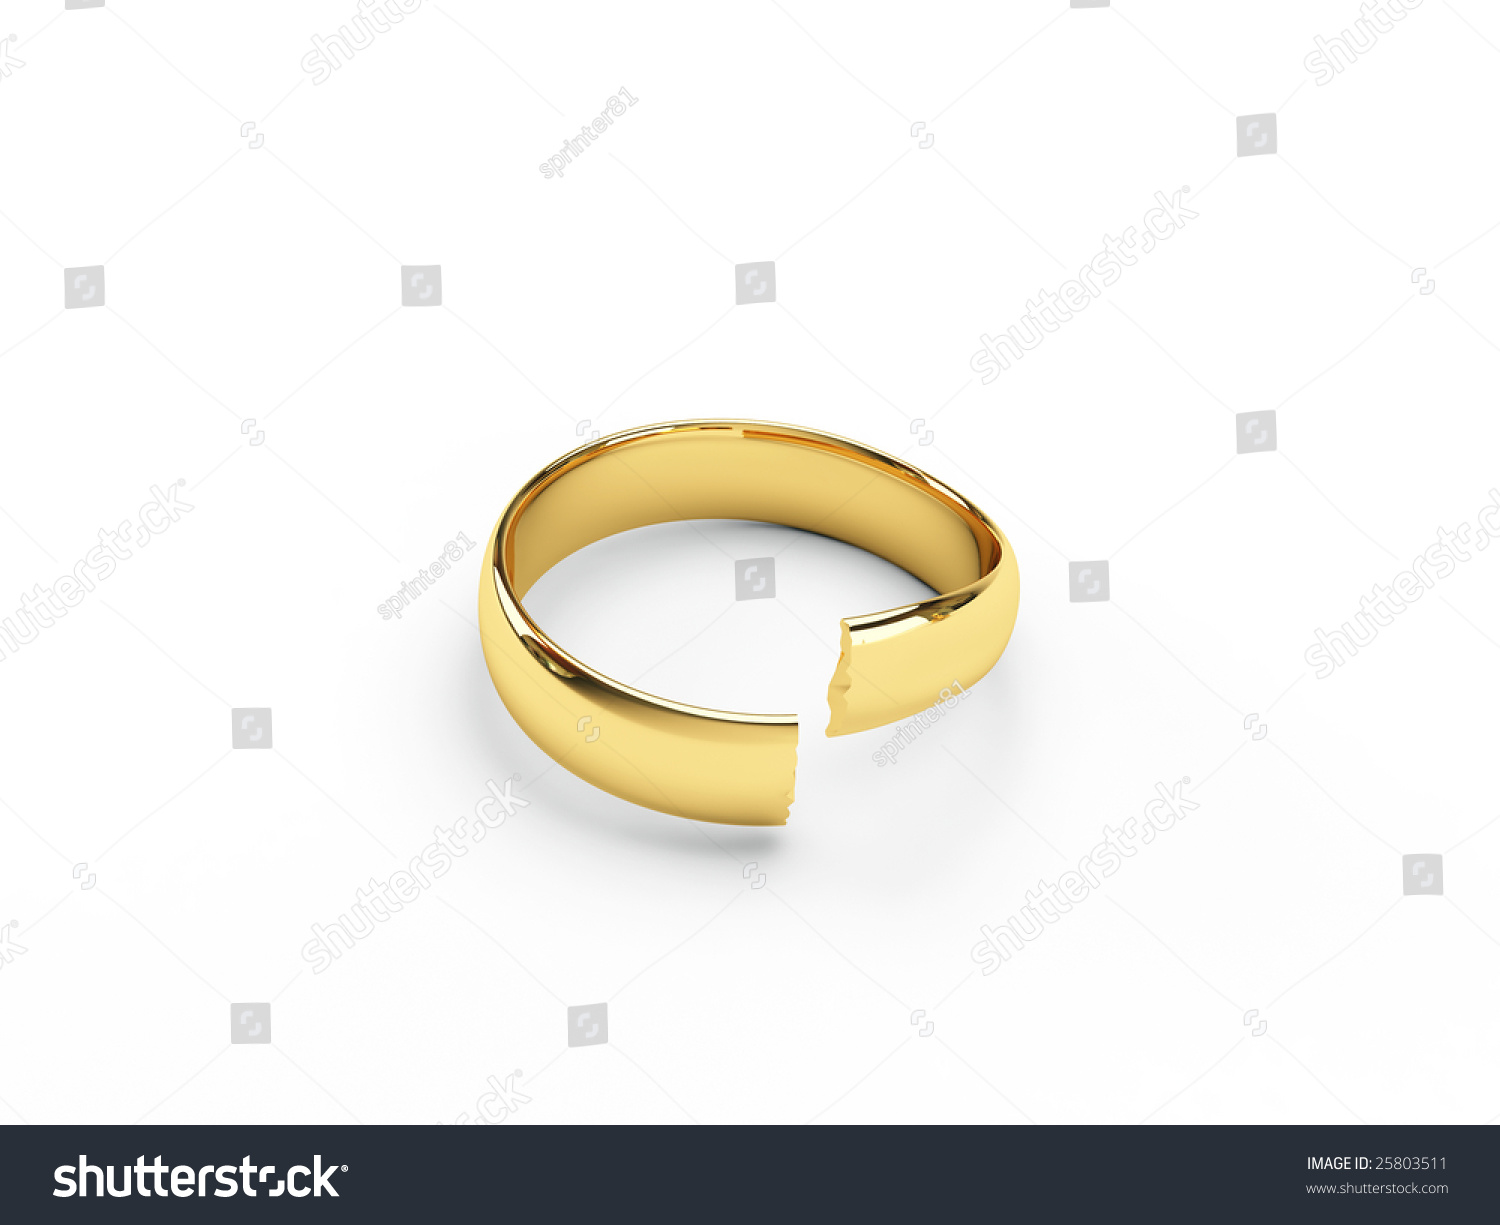 on depositphotos heart stock broken rings golden red andreypopov photo wedding